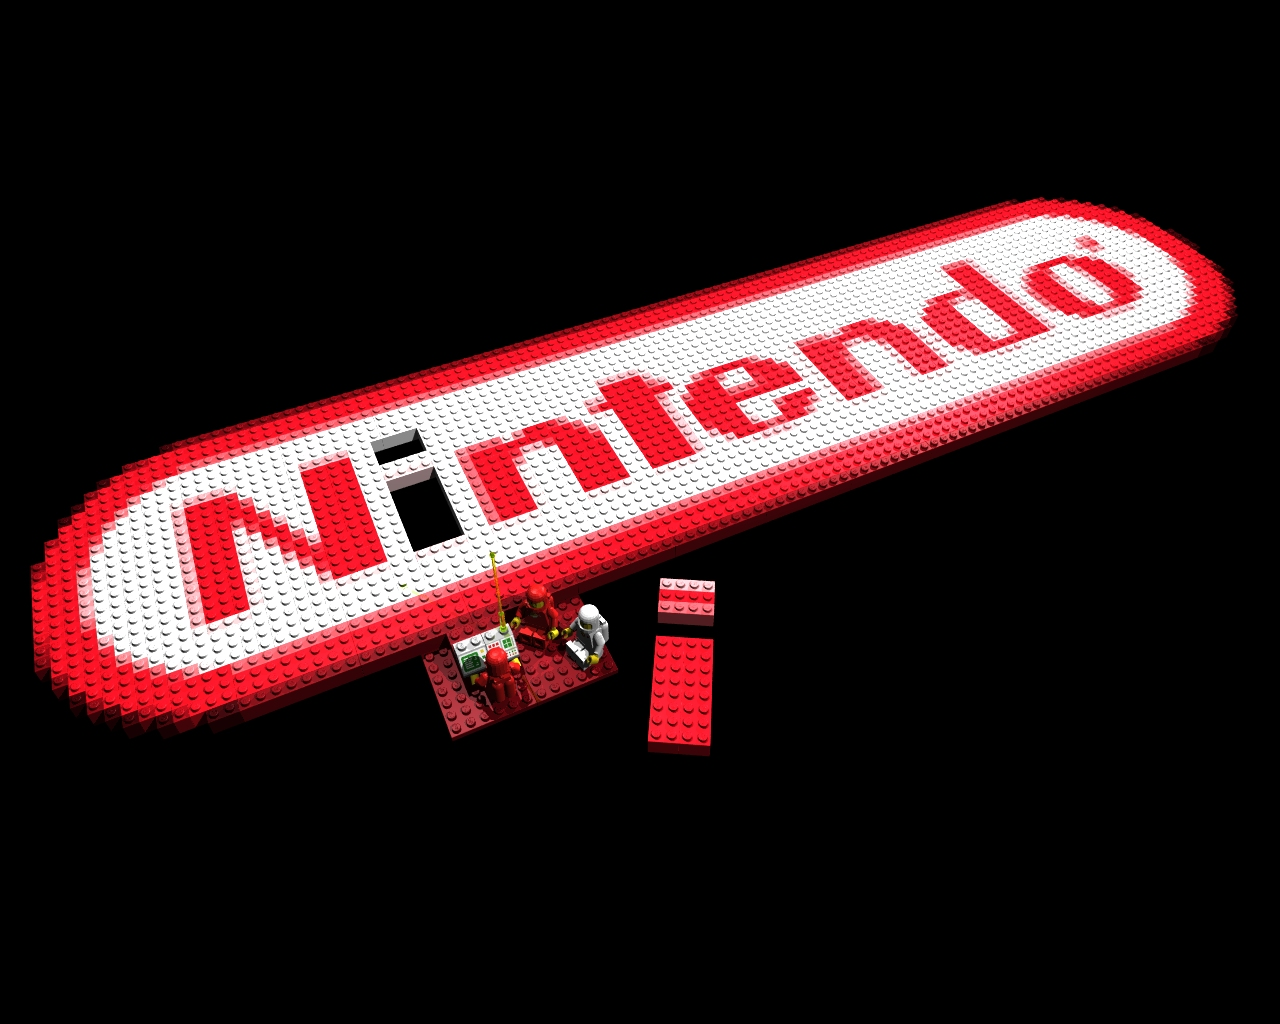 Nintendo Logo Wallpaper Phone – Epic Wallpaperz